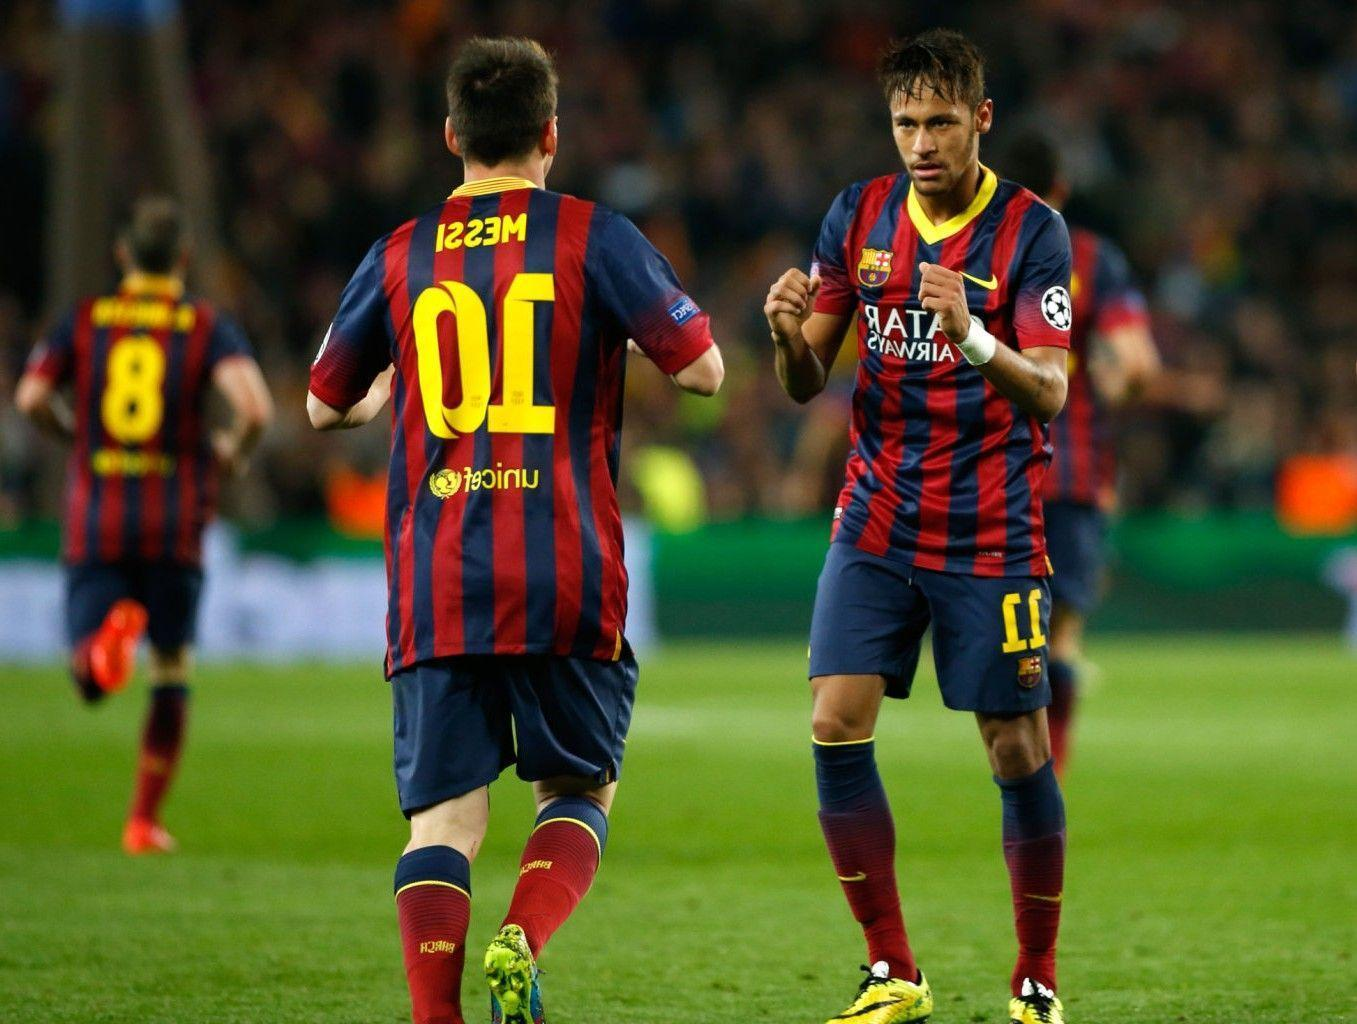 Neymar And Messi Wallpapers - Wallpaper Cave